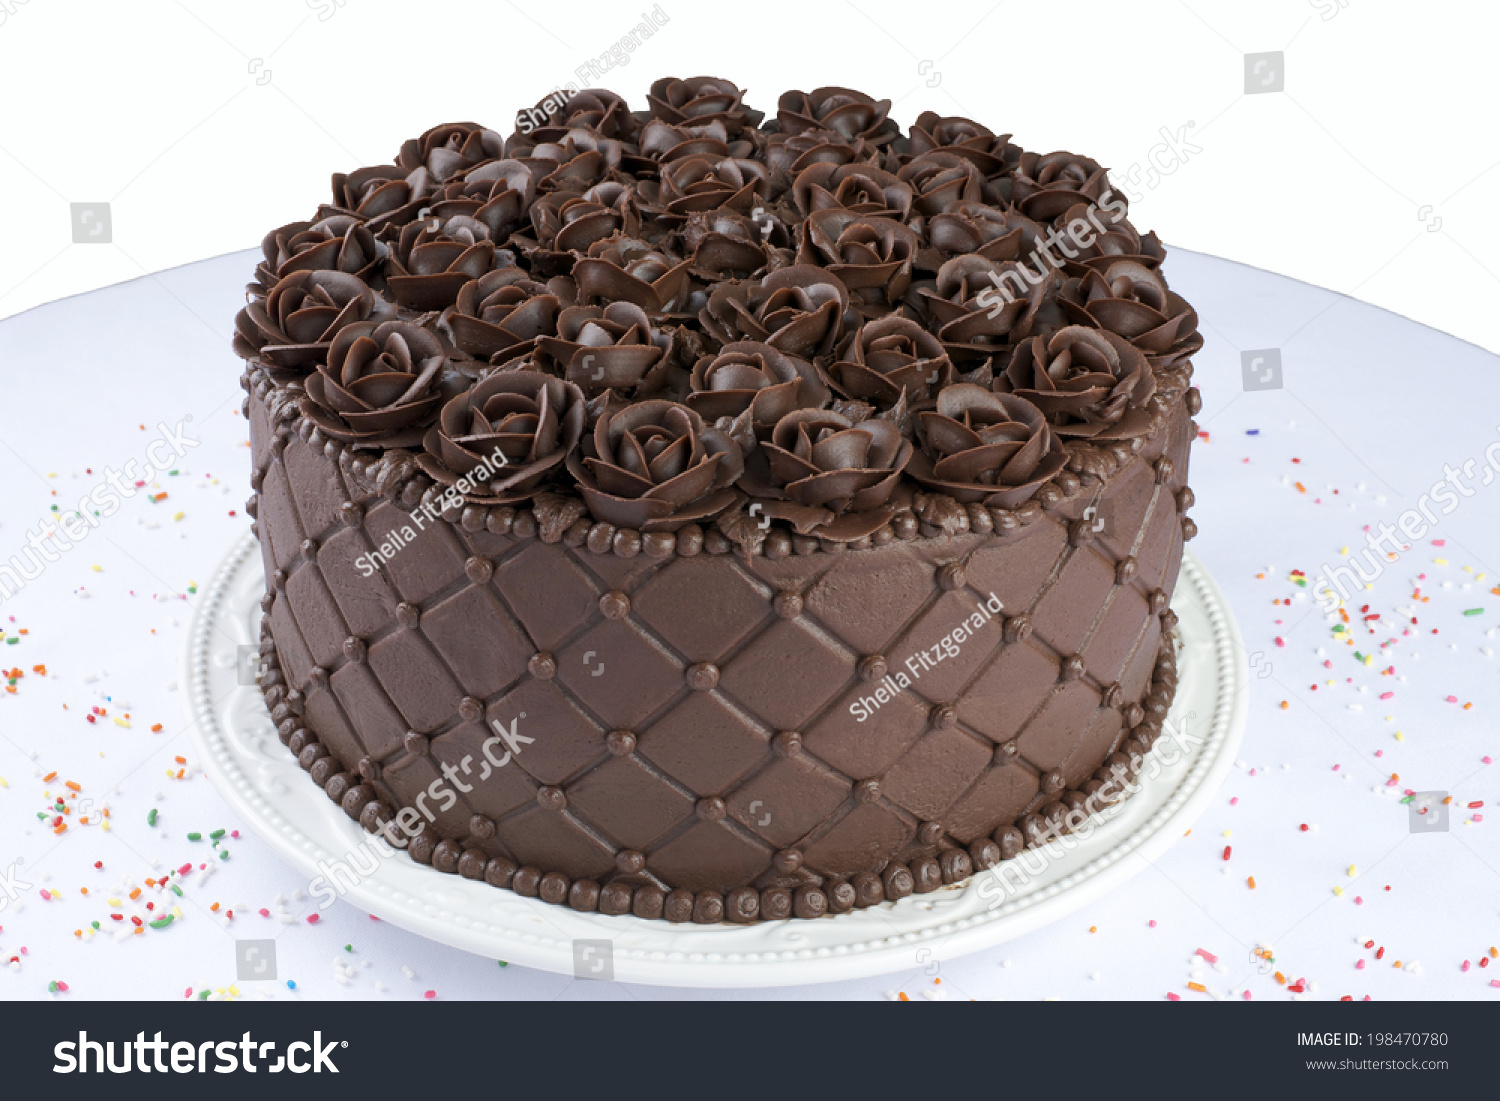 Chocolate Cake With Handmade Chocolate Frosting Roses Top ...